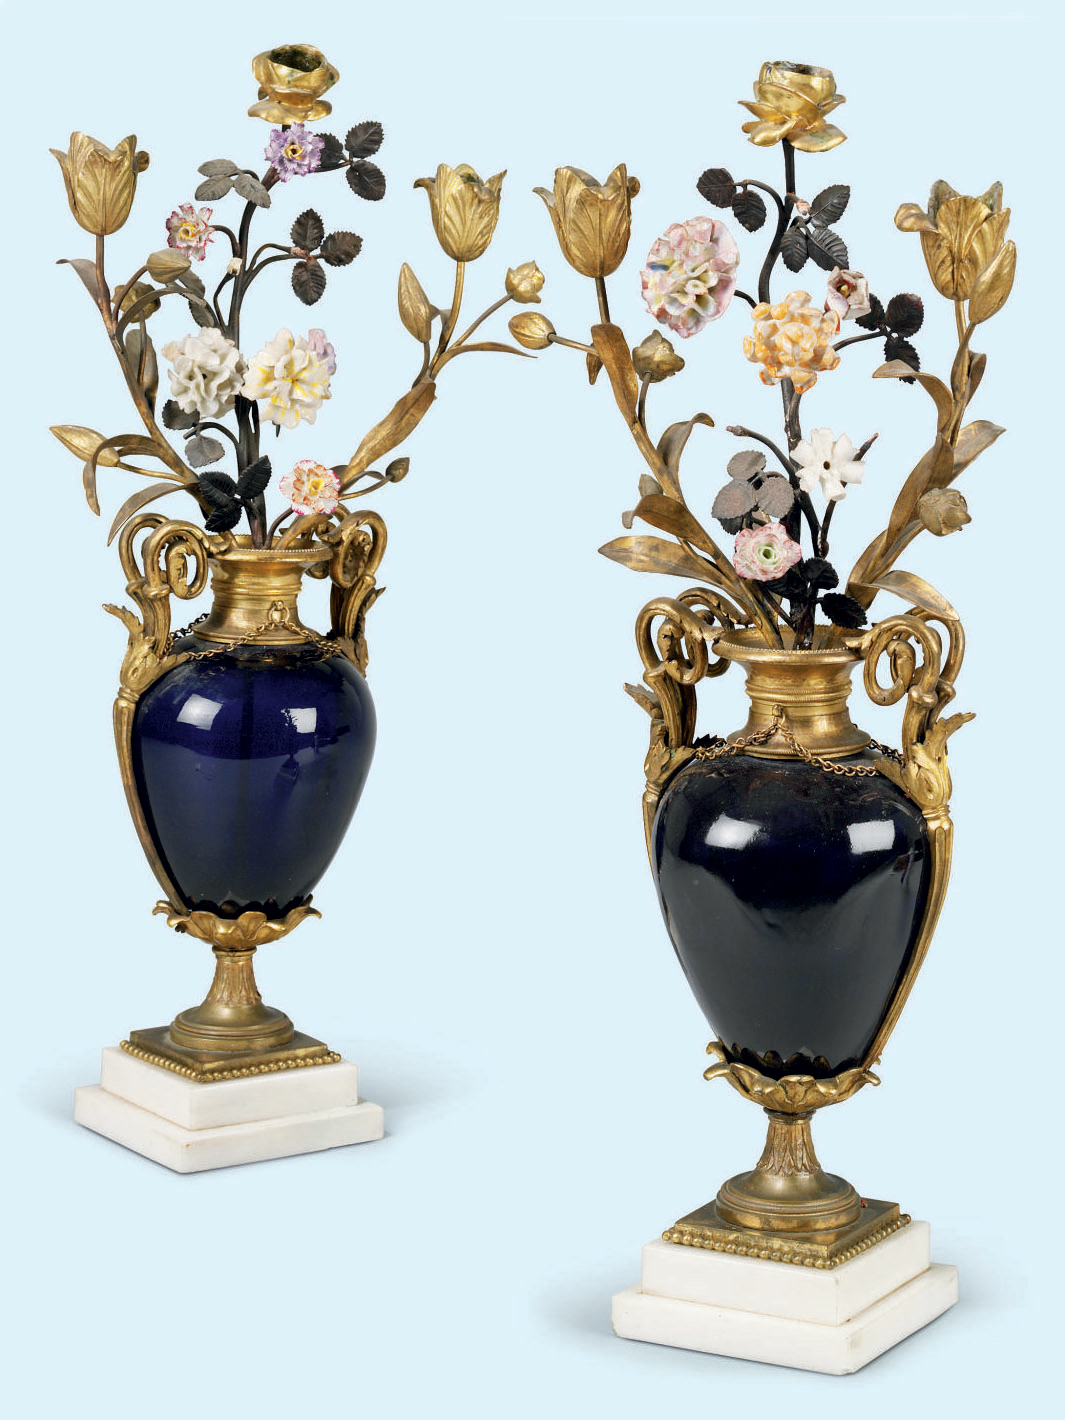 A PAIR OF LOUIS XVI ORMOLU-MOUNTED PORCELAIN AND BLUE GLASS CANDELABRA